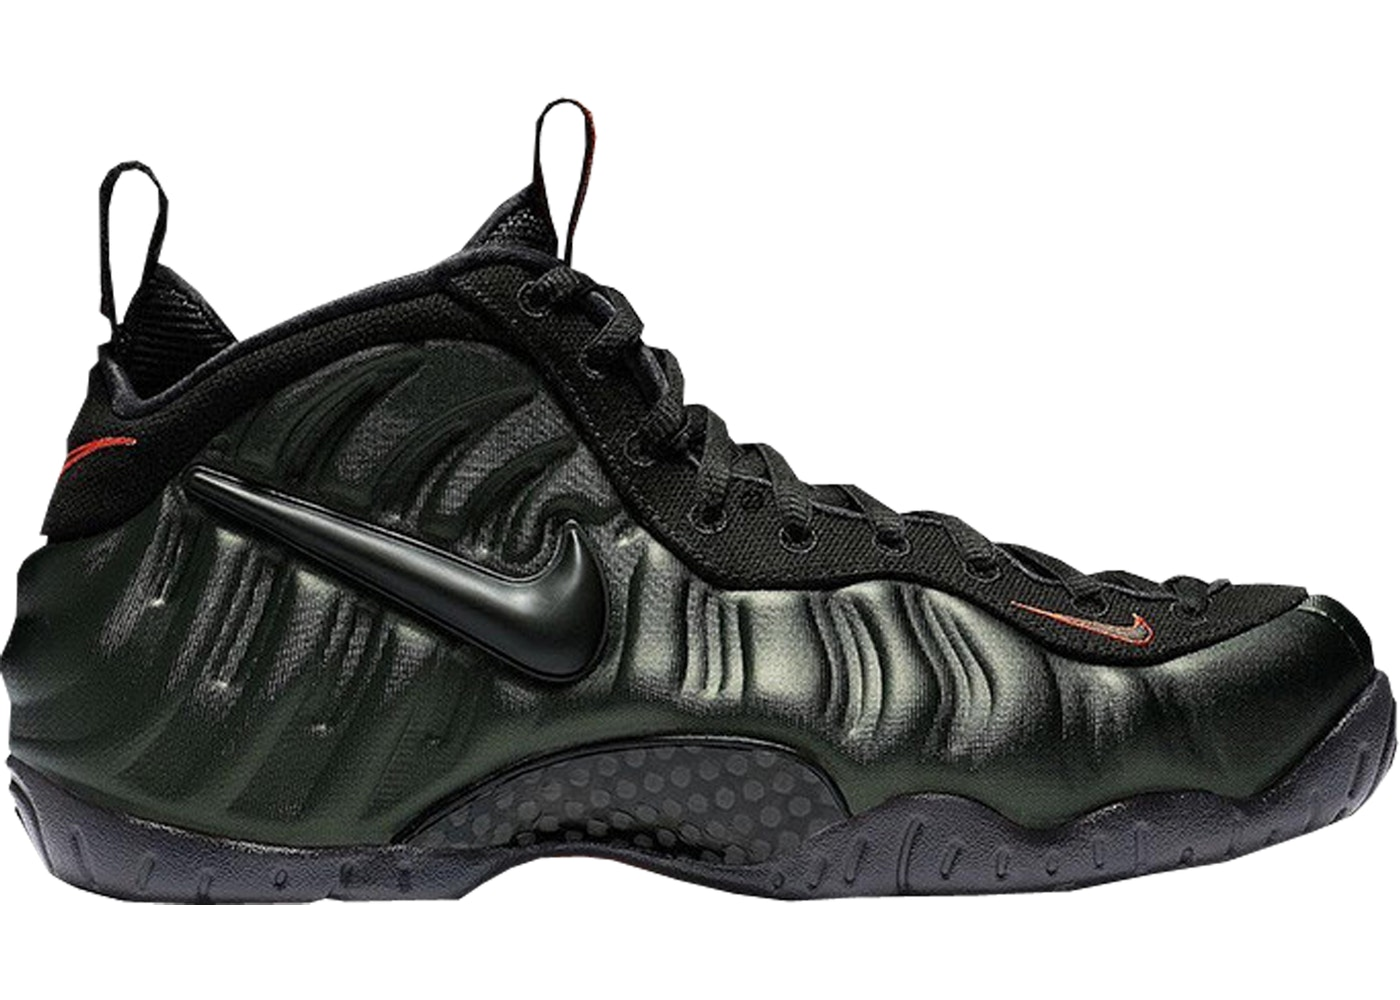 check out ff34d 7ba55 Air Foamposite Pro Sequoia - 624041-304